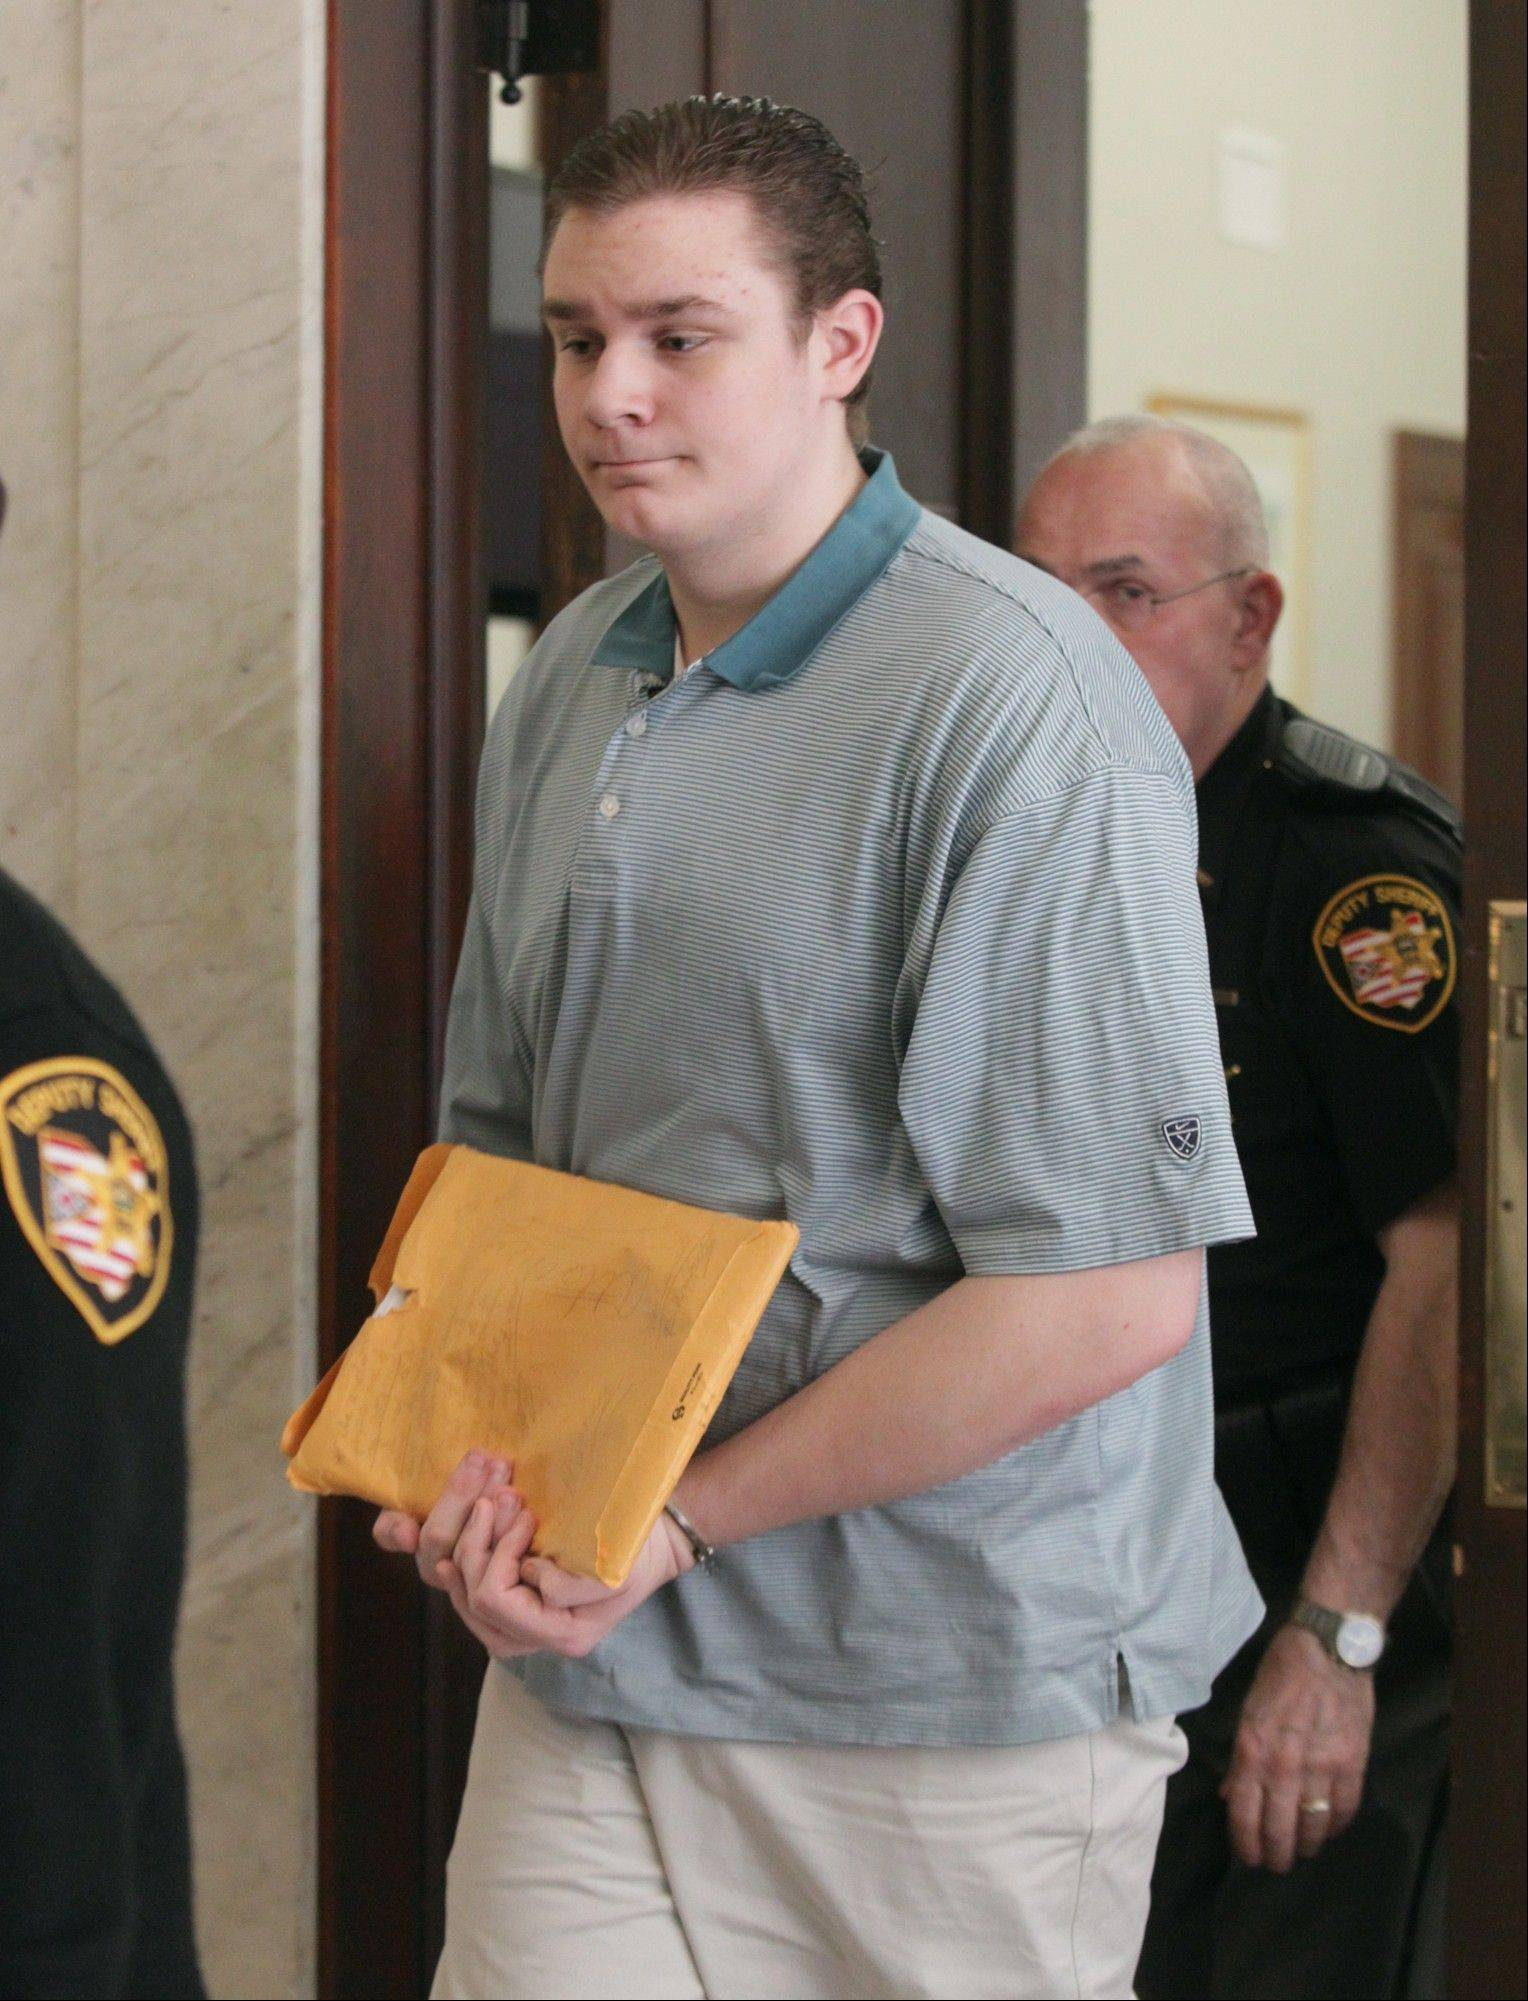 Brogan Rafferty, 17, is escorted by police Friday from the Summit County Common Pleas Courtroom in Akron, Ohio. Rafferty and an adult accomplice are charged with three killings in a plot to lure victims through phony Craigslist job offers.